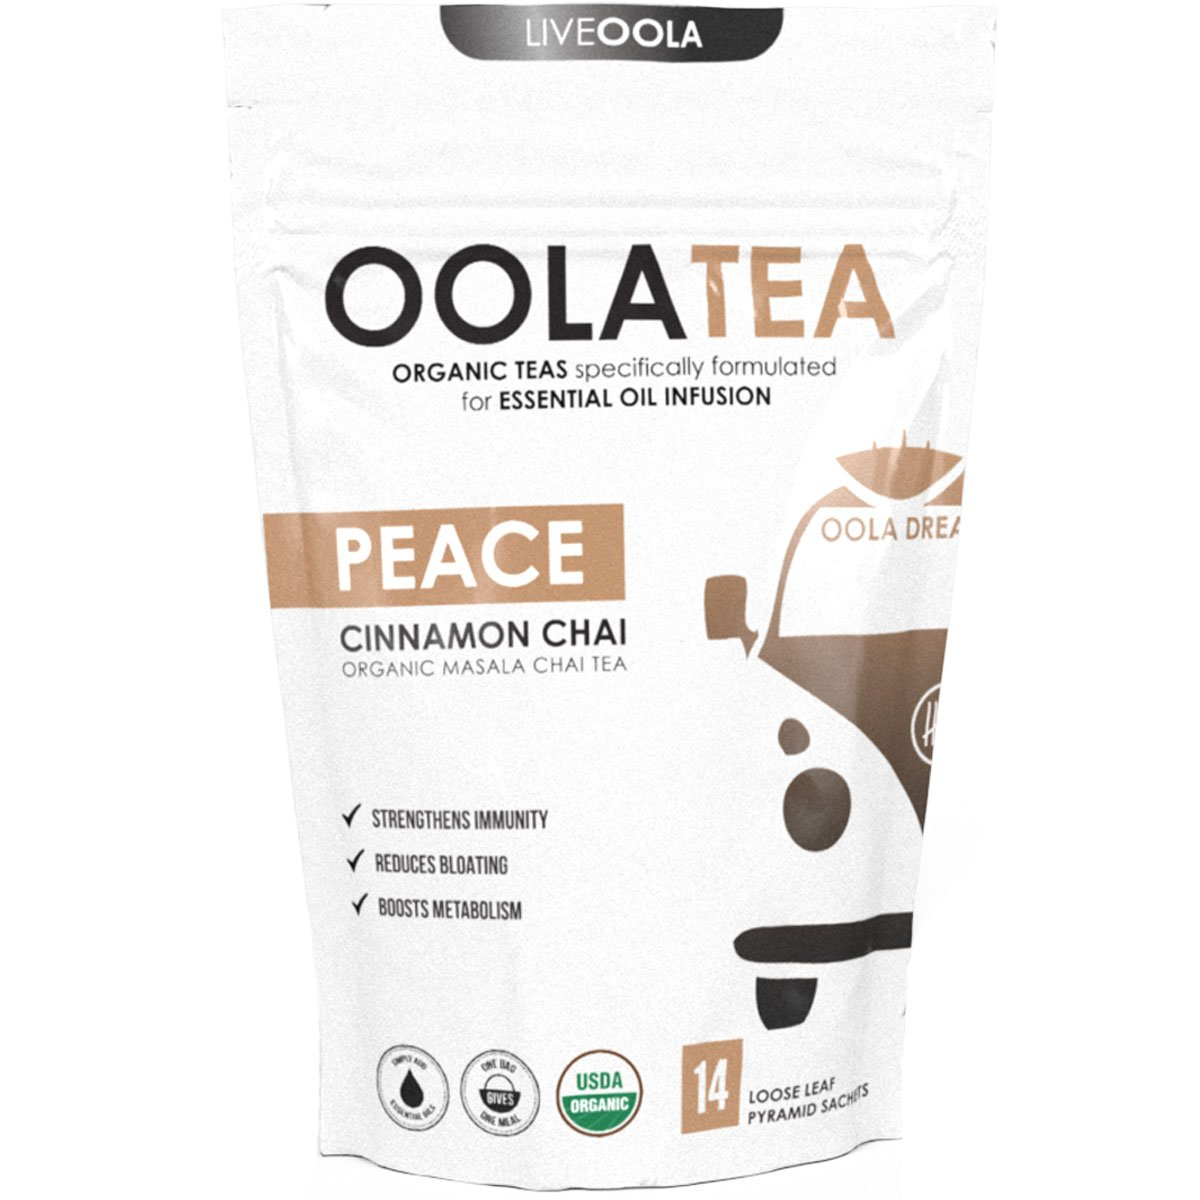 Oola Tea - PEACE 14 Count | Certified Organic Masala Chai | Reduces Bloating | Strengthens Immunity